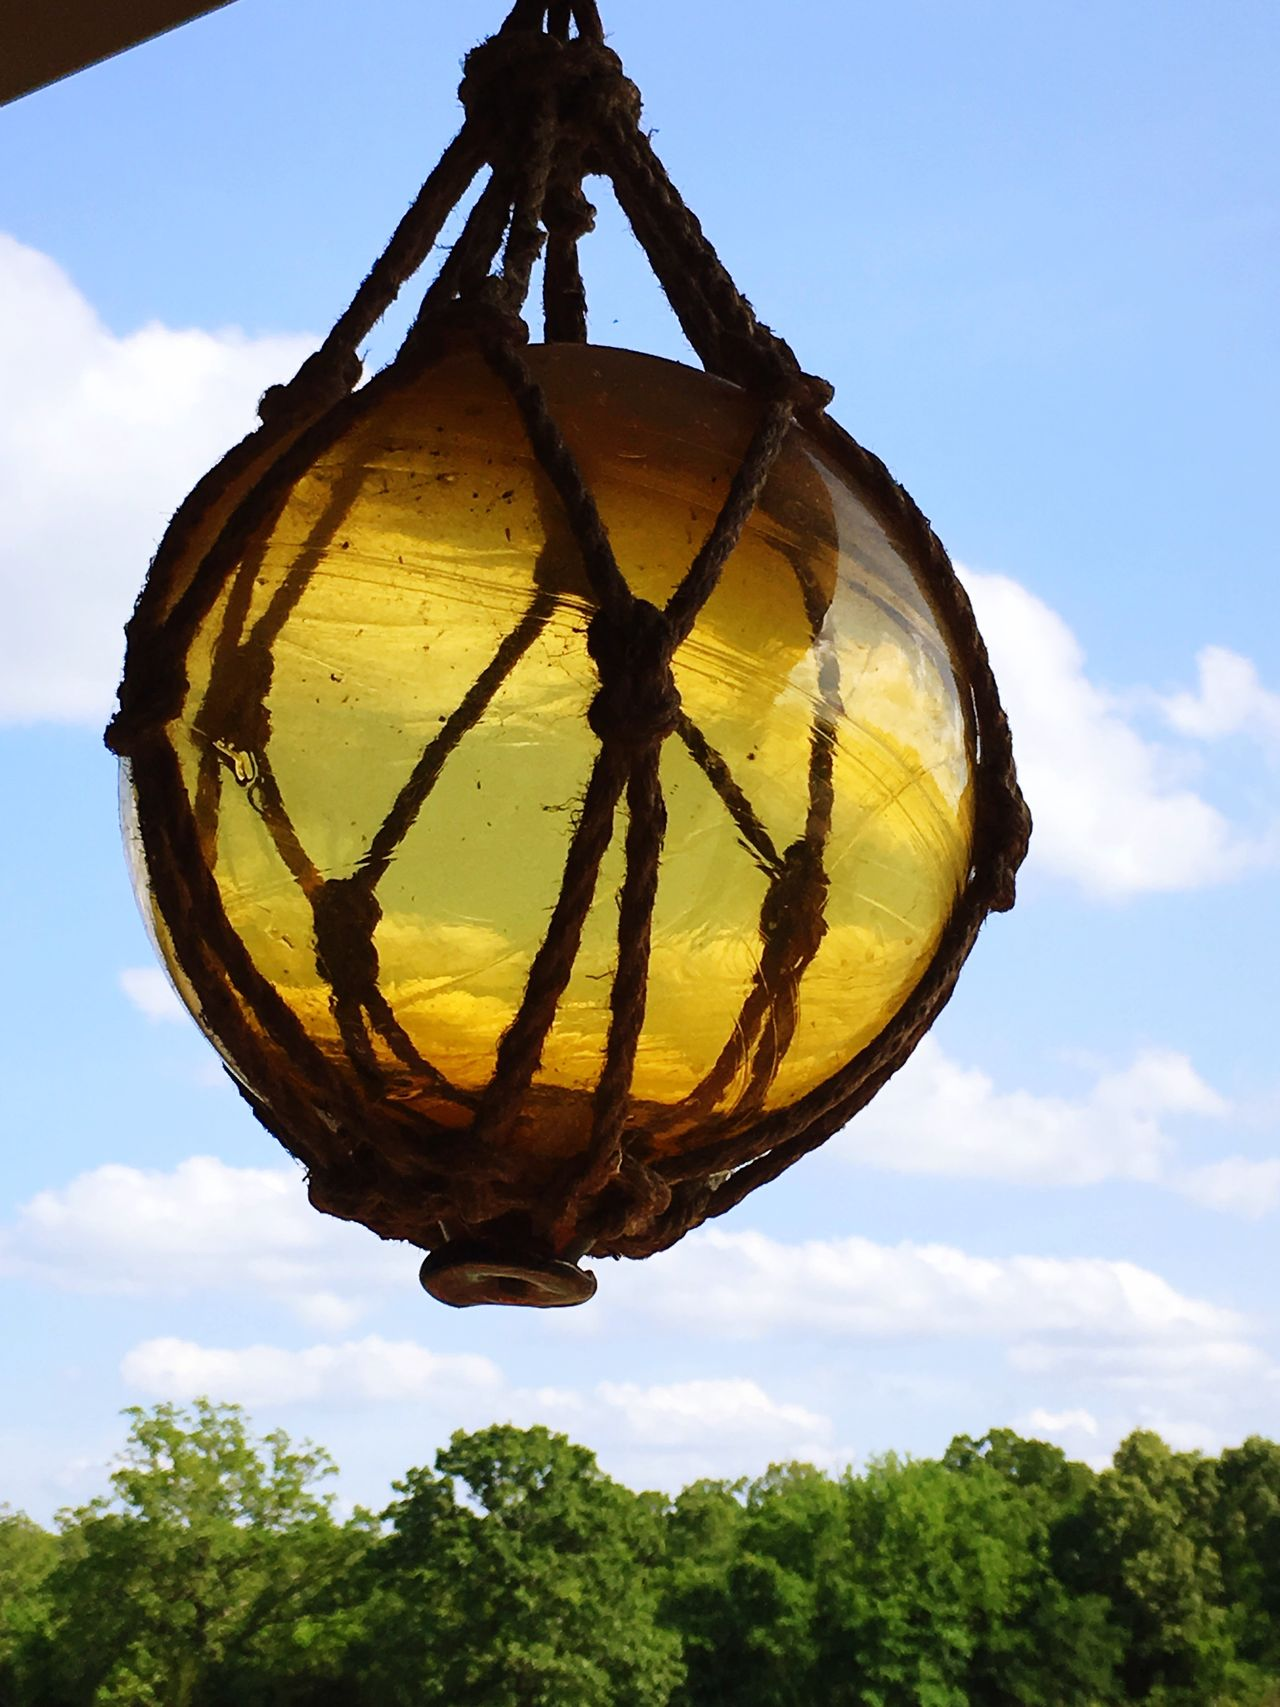 Hanging No People Glass - Material Netting Glass Ball Porch Sky Day Outdoors